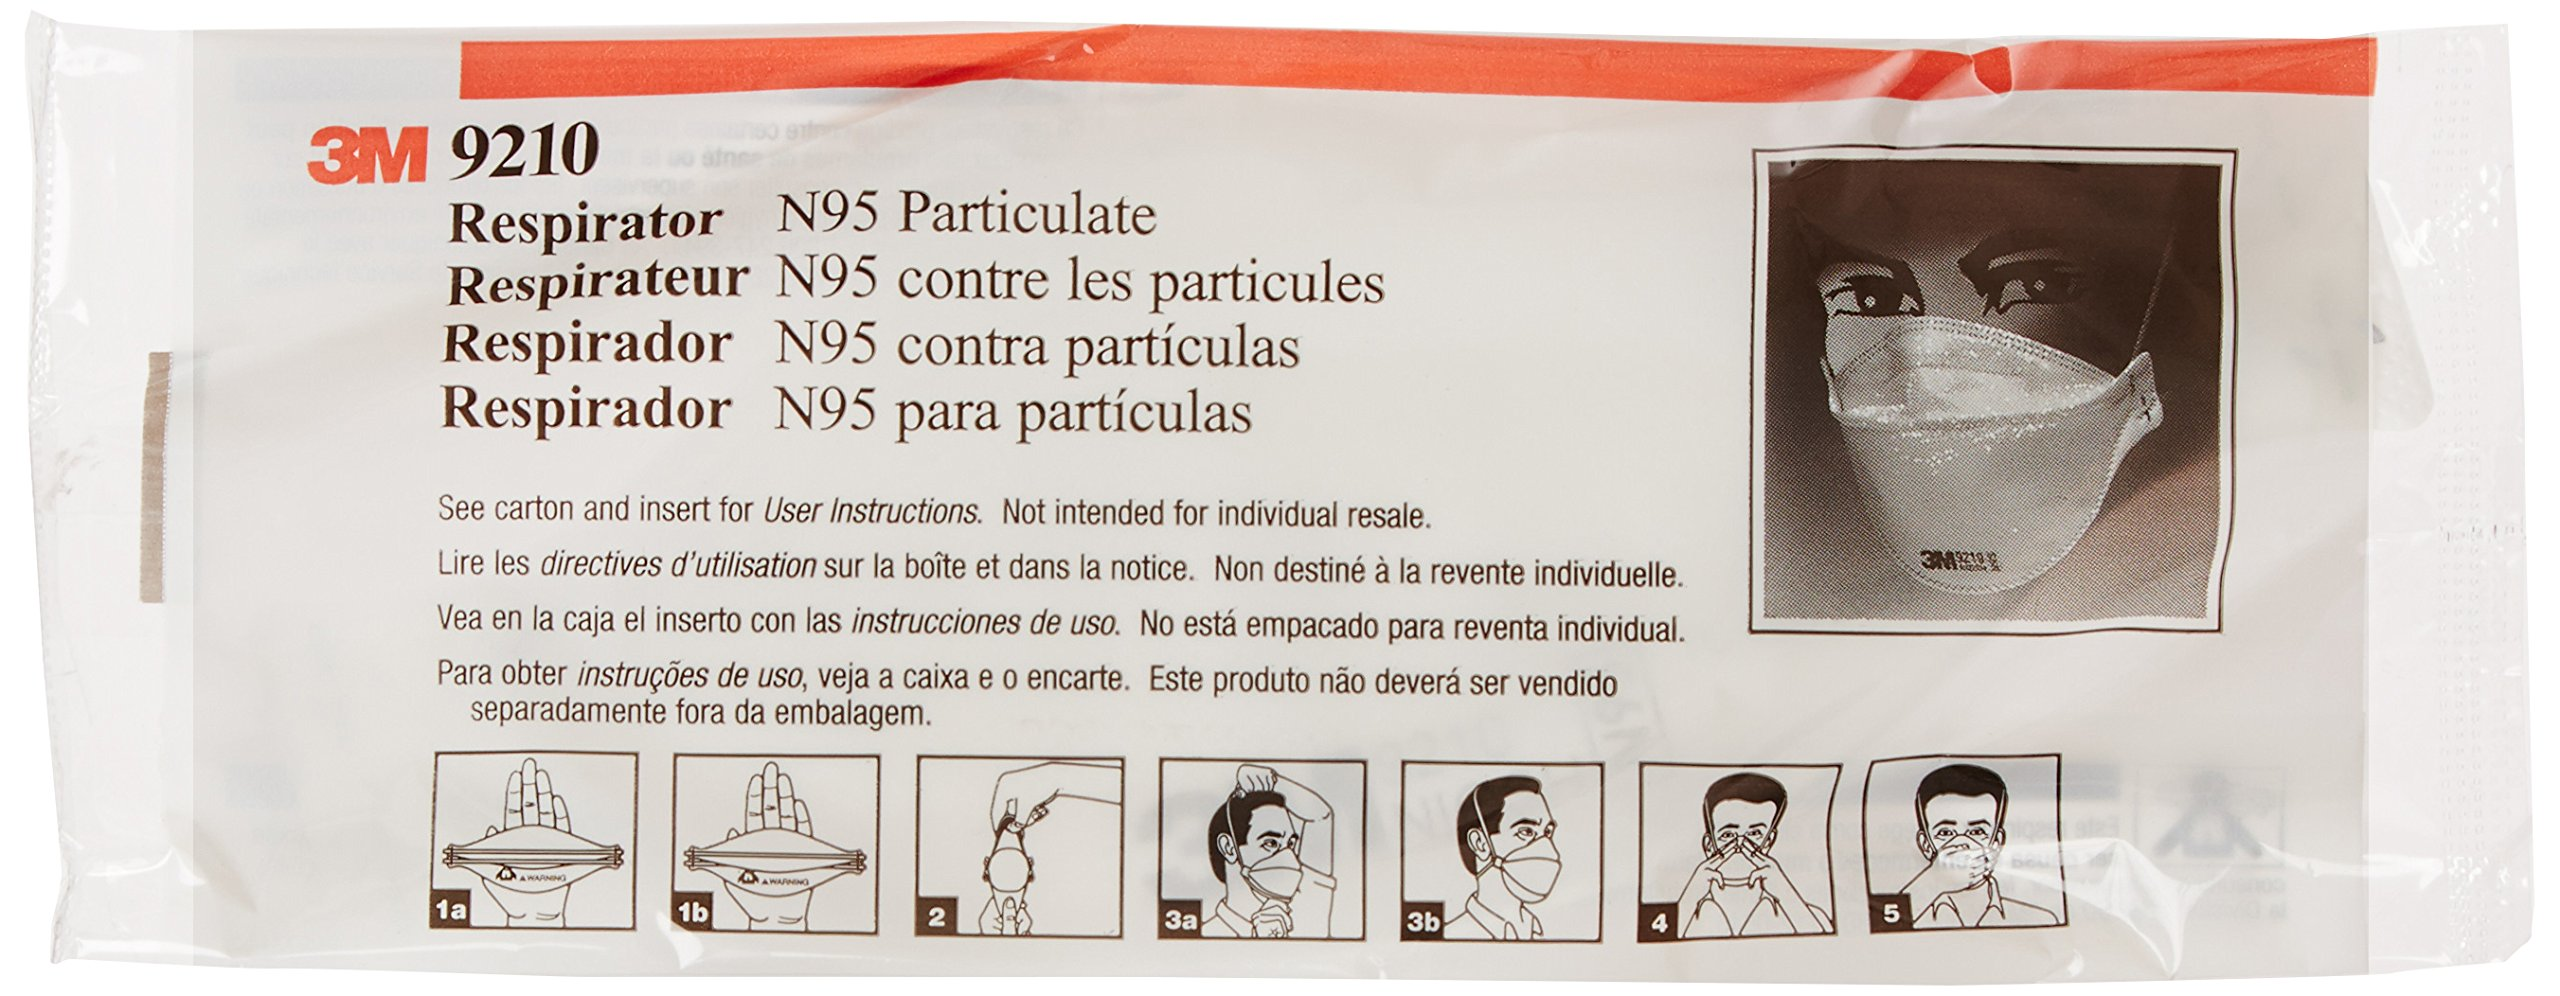 3M 3MR9210 N95 Particulate Disposable Respirator with 3 Panel, Flat Fold, NIOSH 42CFR84 Standard (Pack of 20)